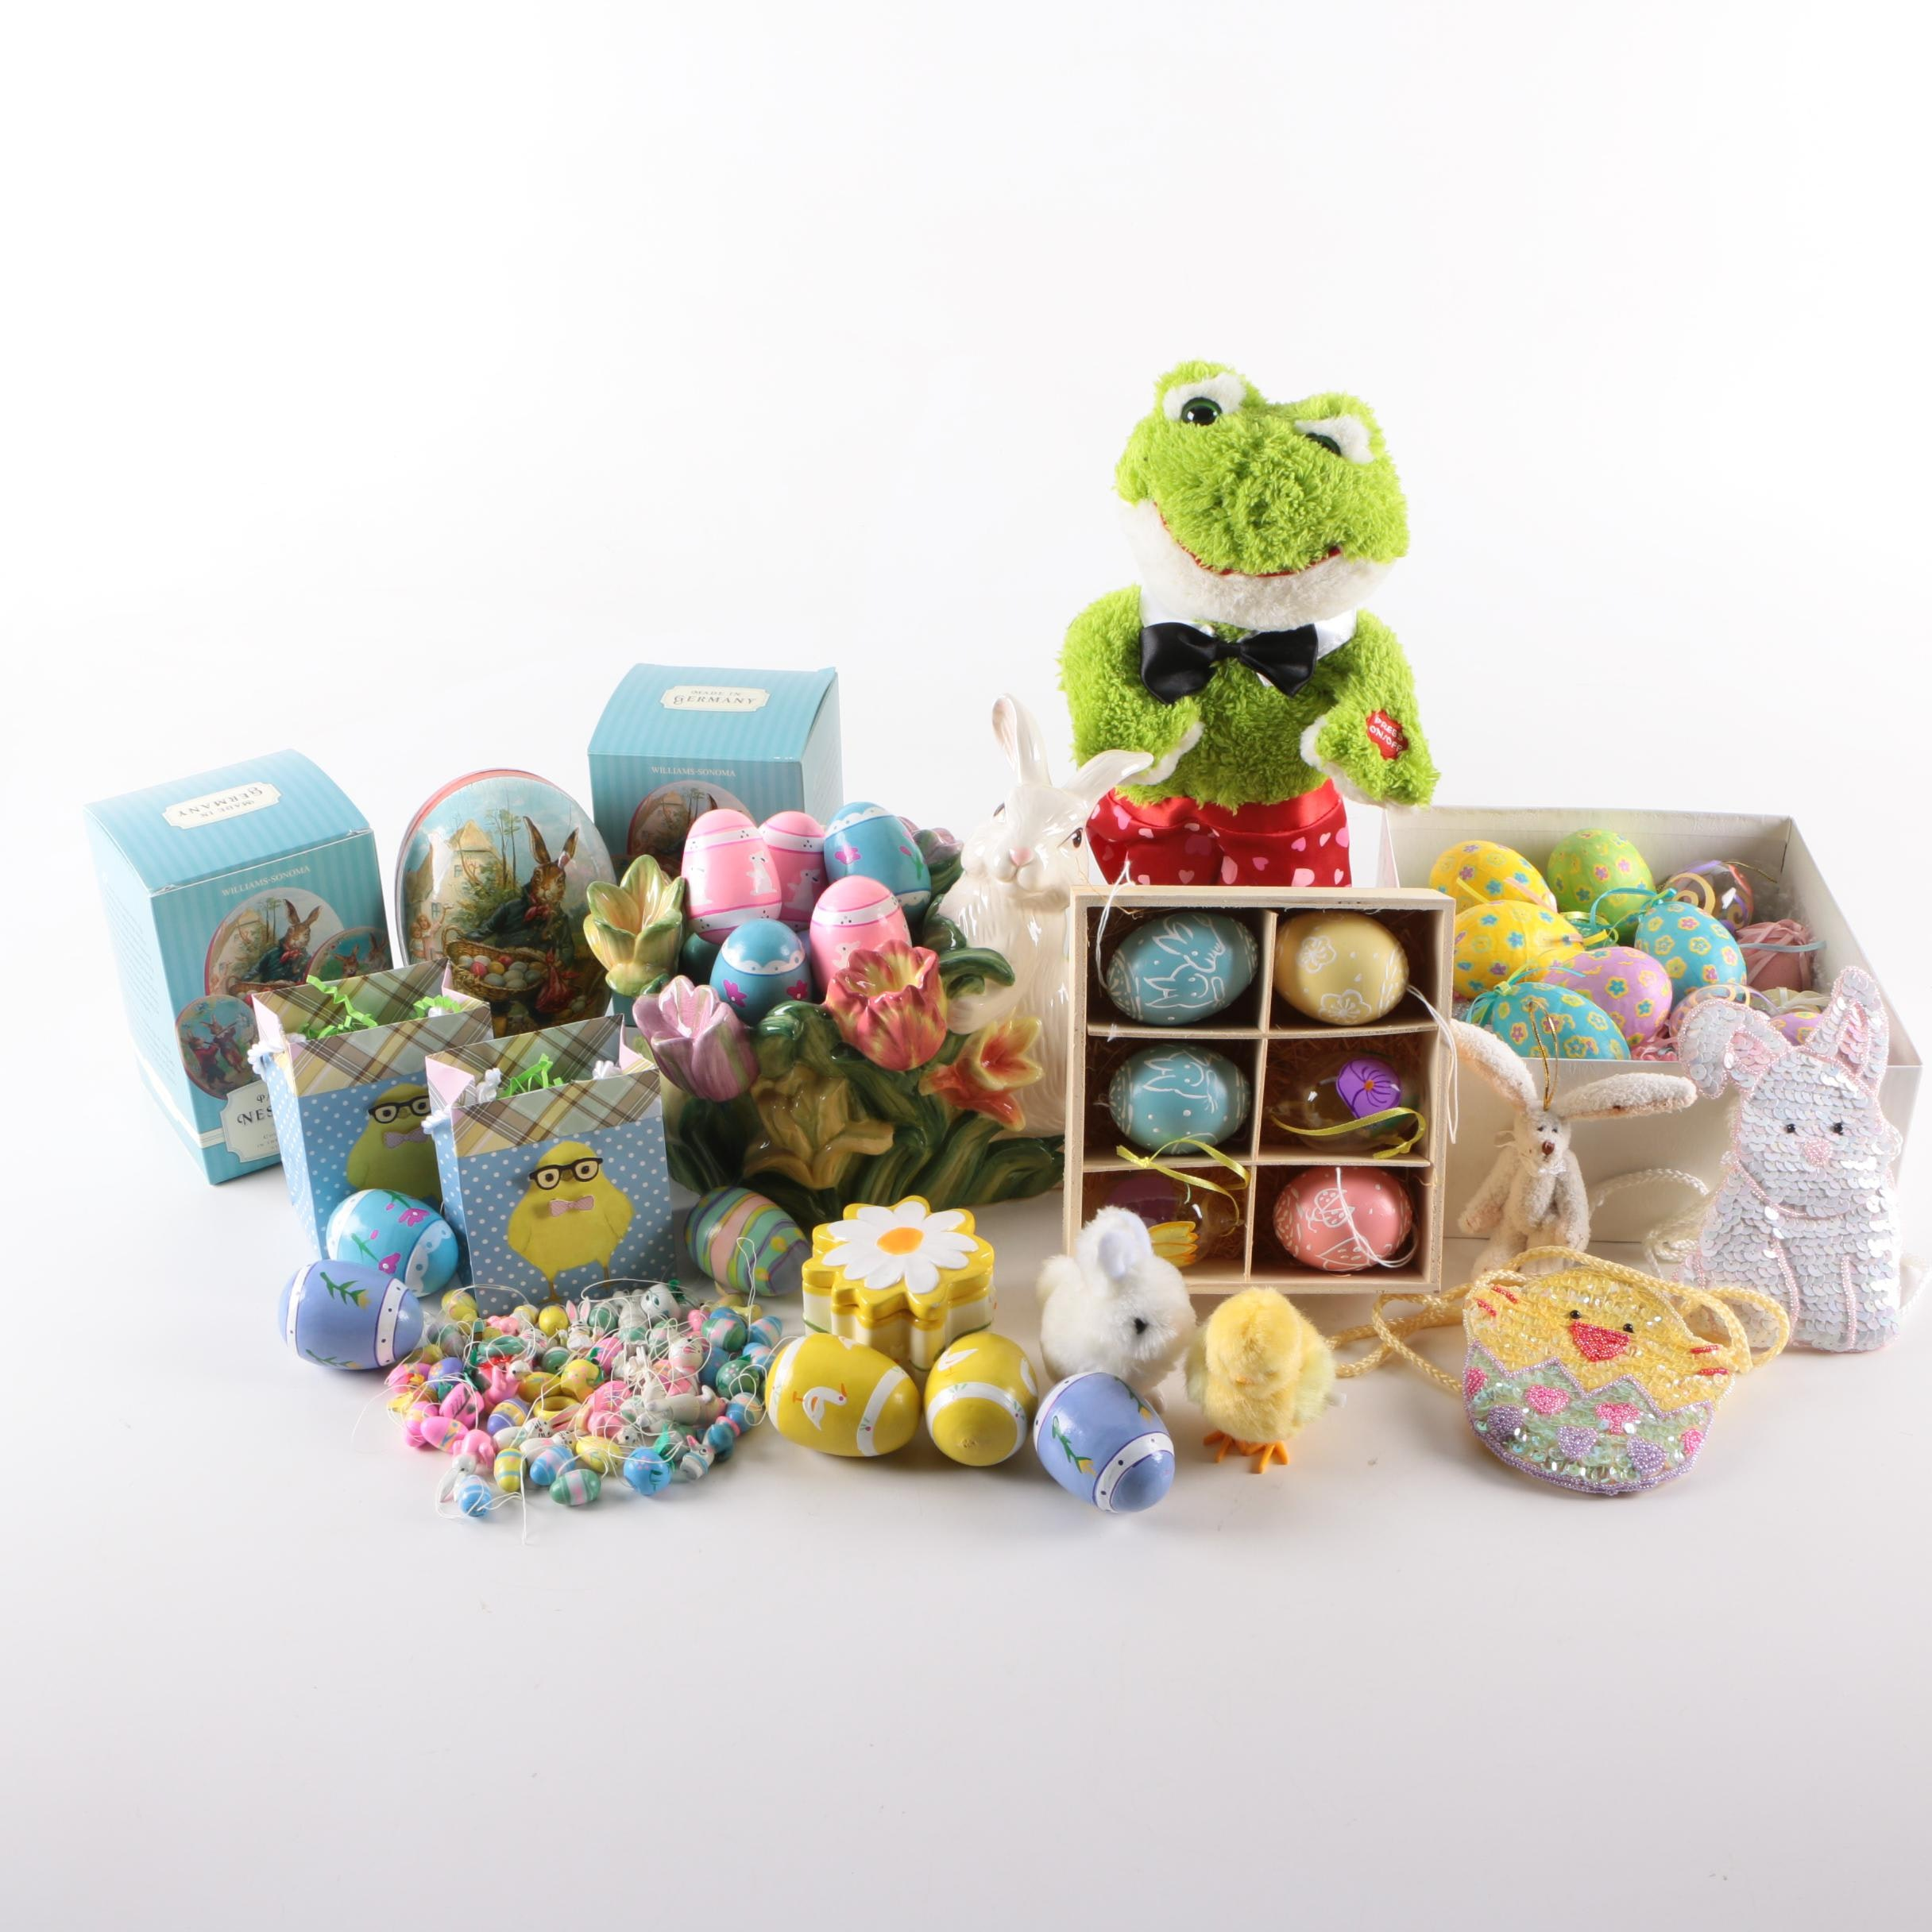 Easter Eggs and Holiday Decorations Including Williams-Sonoma